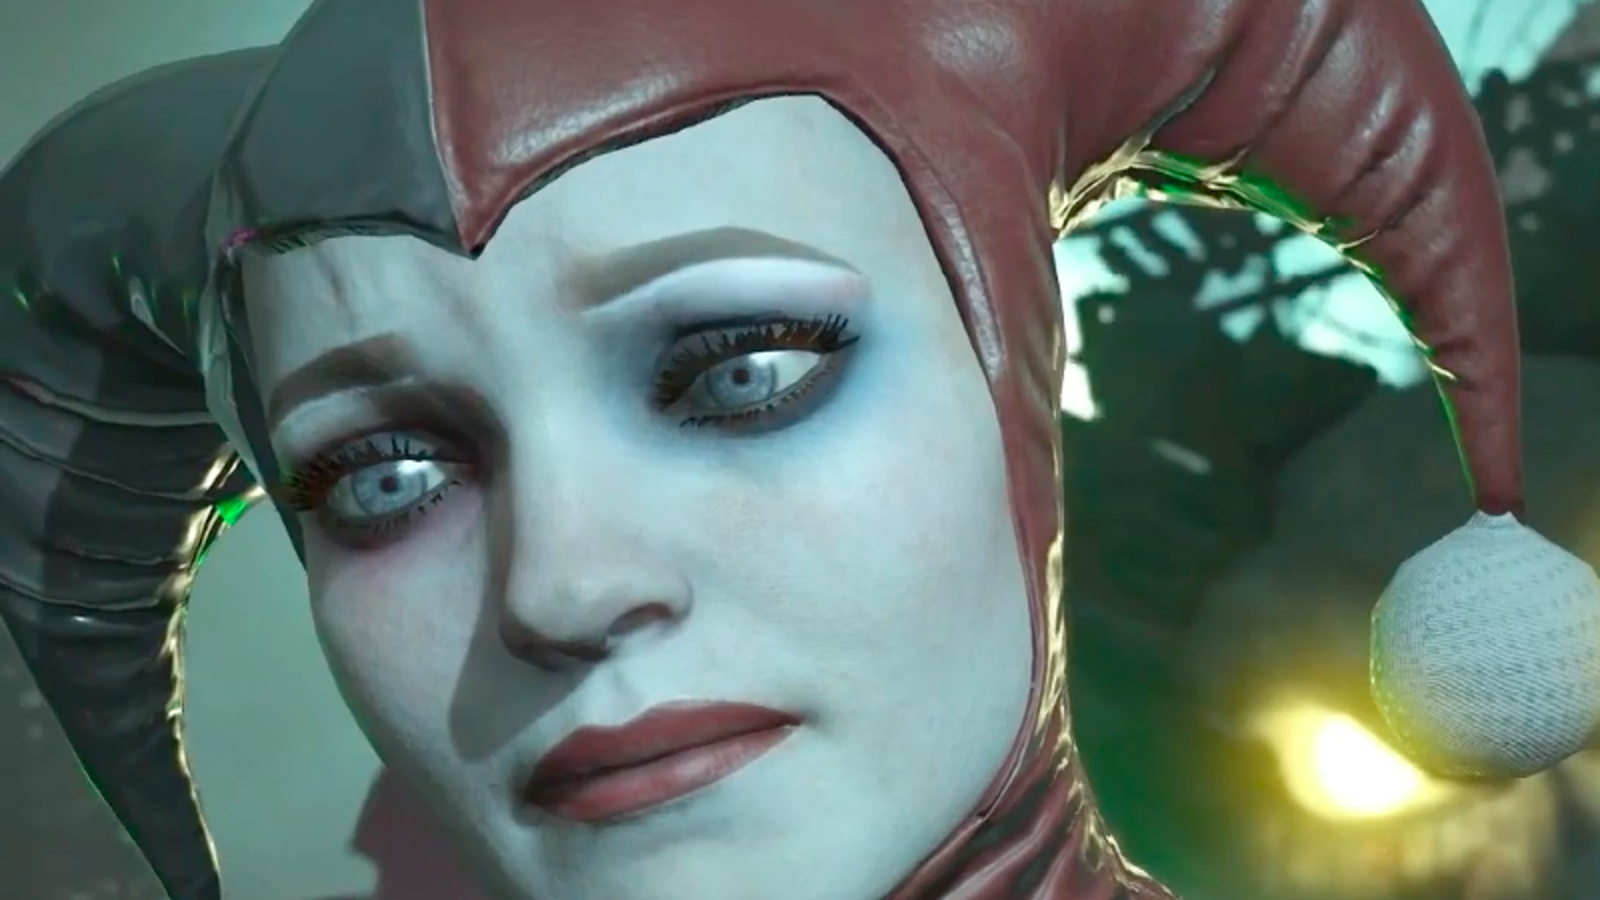 The Thing Injustice 2 Gets Right About Harley Quinn That Suicide Squad Got Wrong